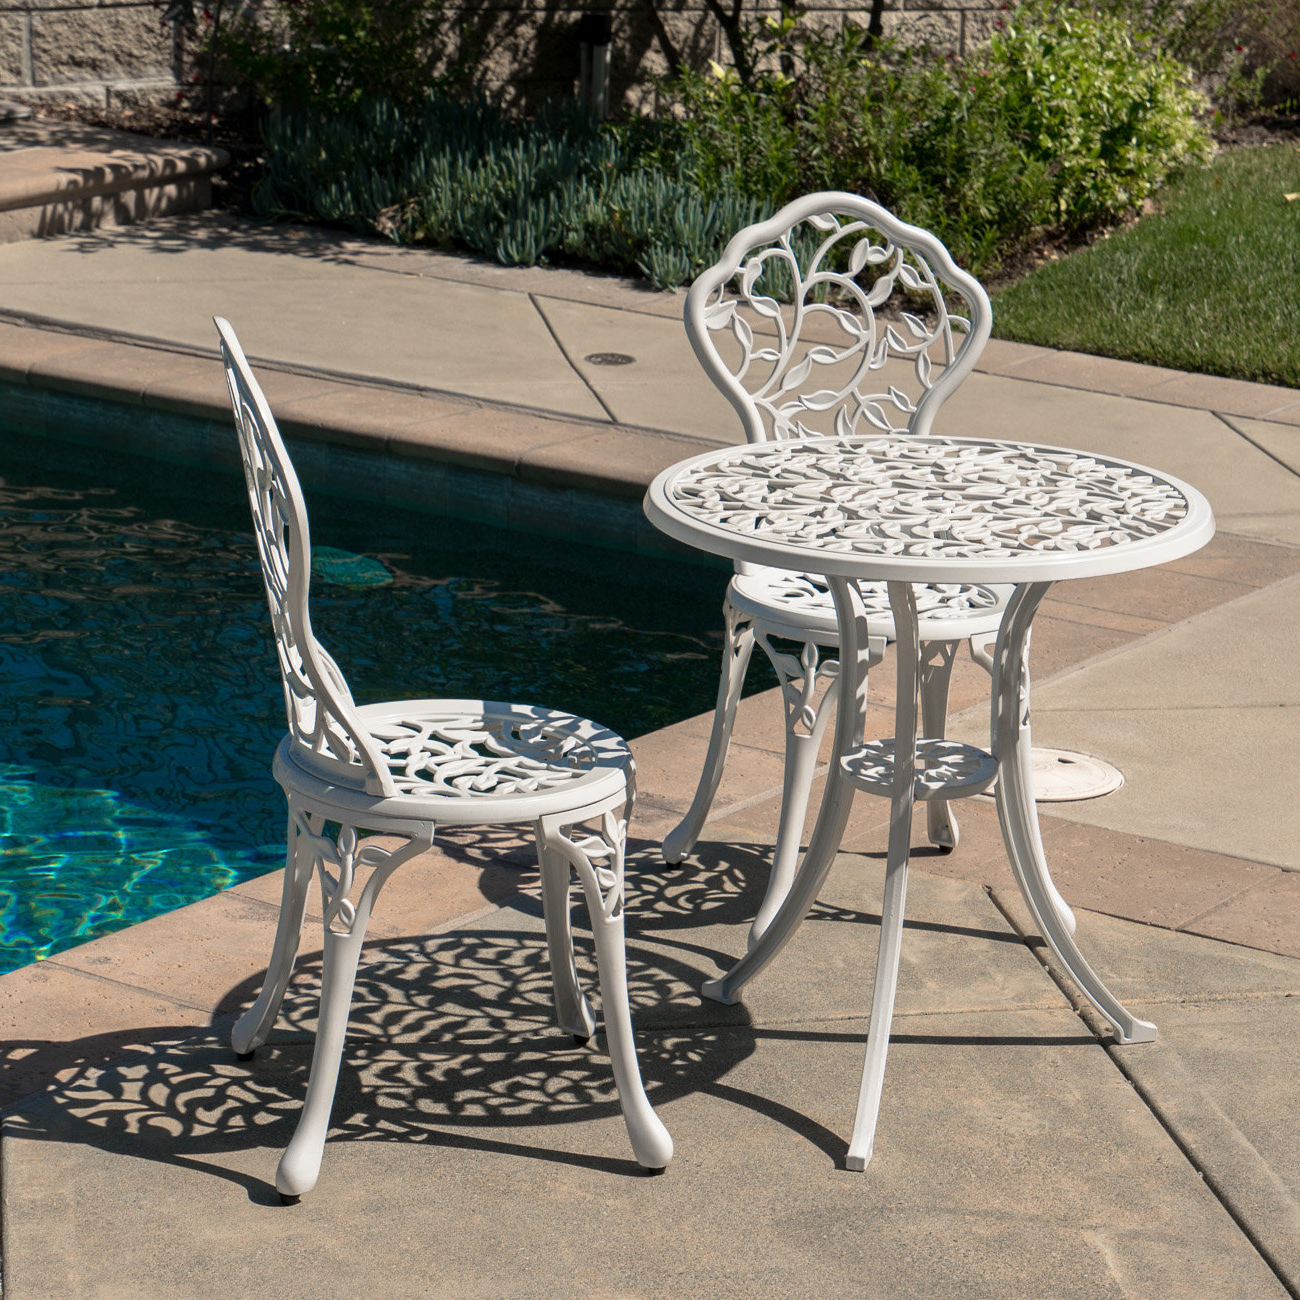 Miskell 3 Piece Dining Sets Throughout Recent 3 Piece Bistro Set (View 11 of 25)